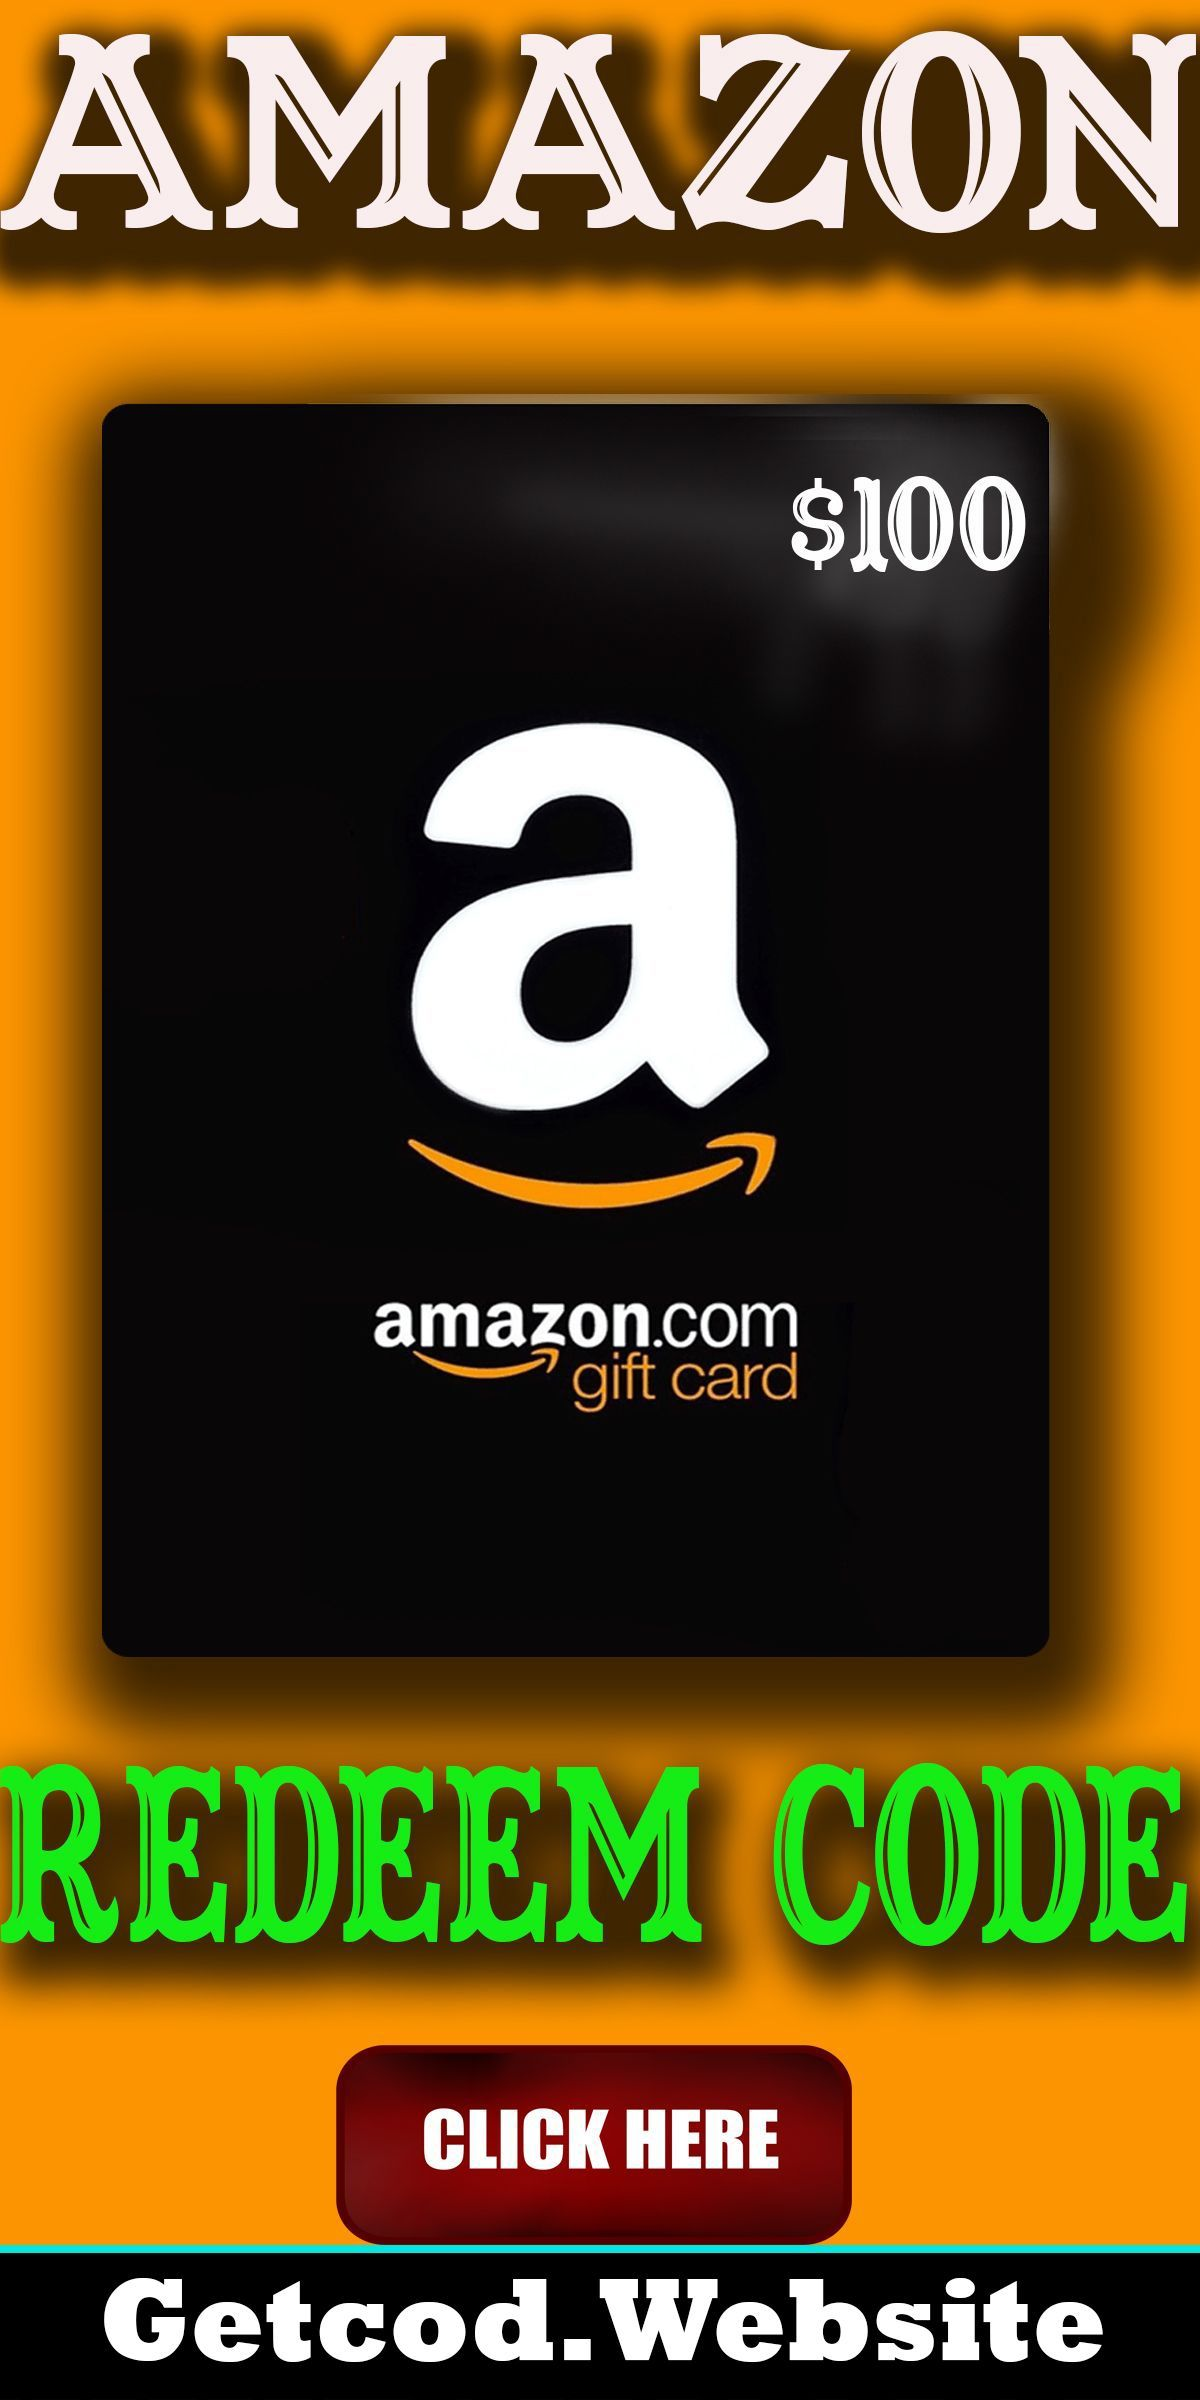 Amazon Gift Card Codes Free Amazon Codes And Love Amazon Gift Card Codes Free Amazon Codes And Love Ho In 2020 Amazon Gift Card Free Amazon Gift Cards Gift Card